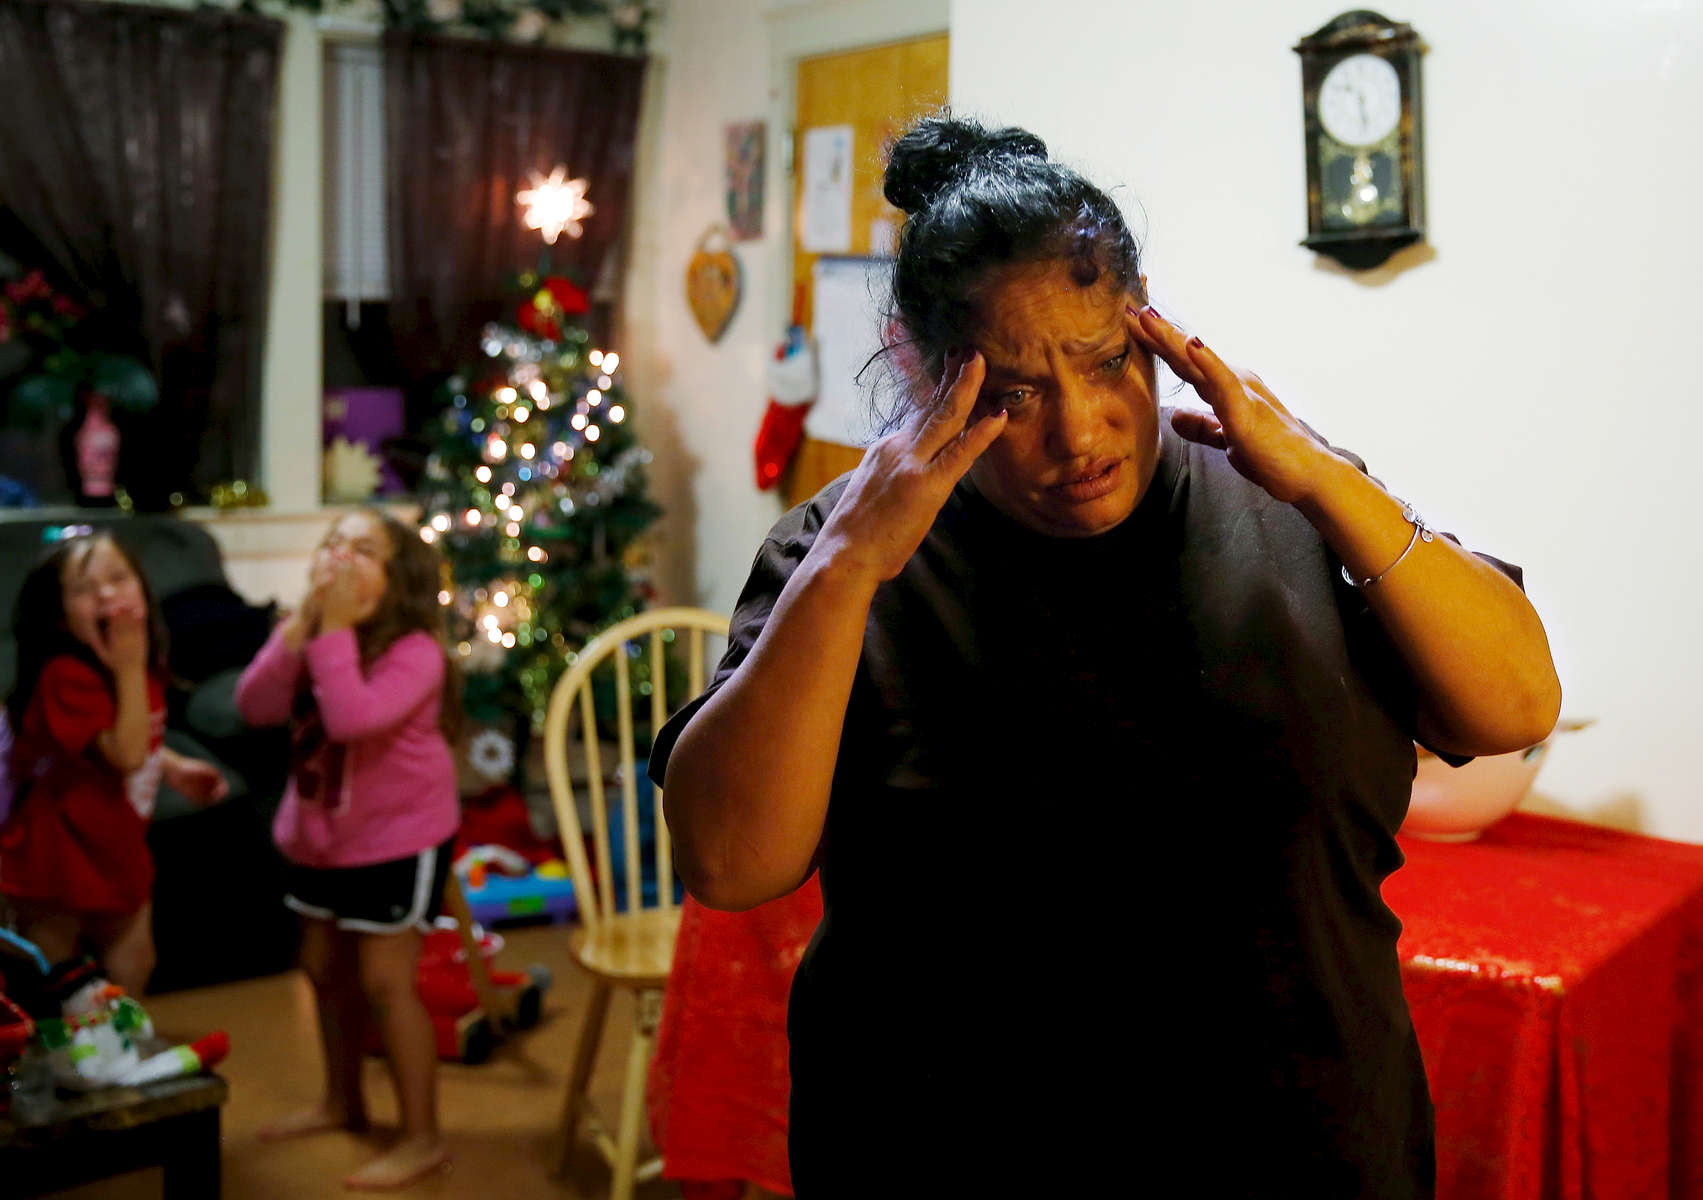 High on heroin, Raquel Rodriguez reacts as her daughters, Estrella and Mimi, run back and forth across her small living room. Tomorrow Raquel will go to the clinic and get her first dose of methadone, but tonight she worries that she won't be able to do it.